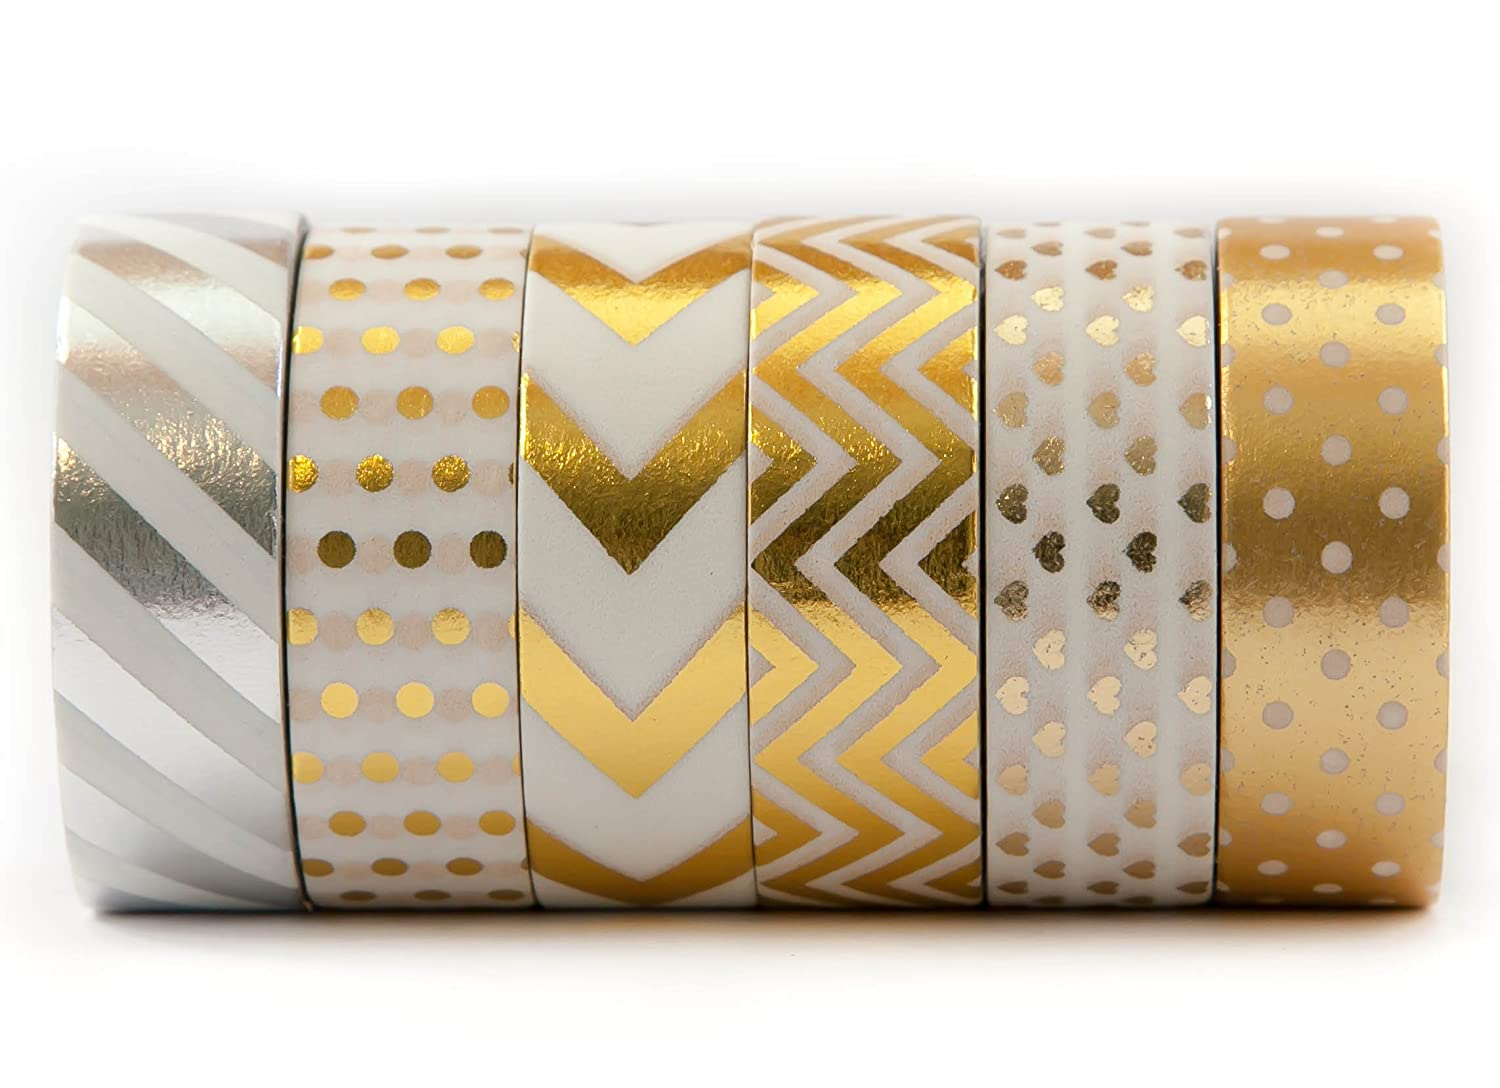 6 Rolls Of Gold Washi Colored Decorative Masking Tape